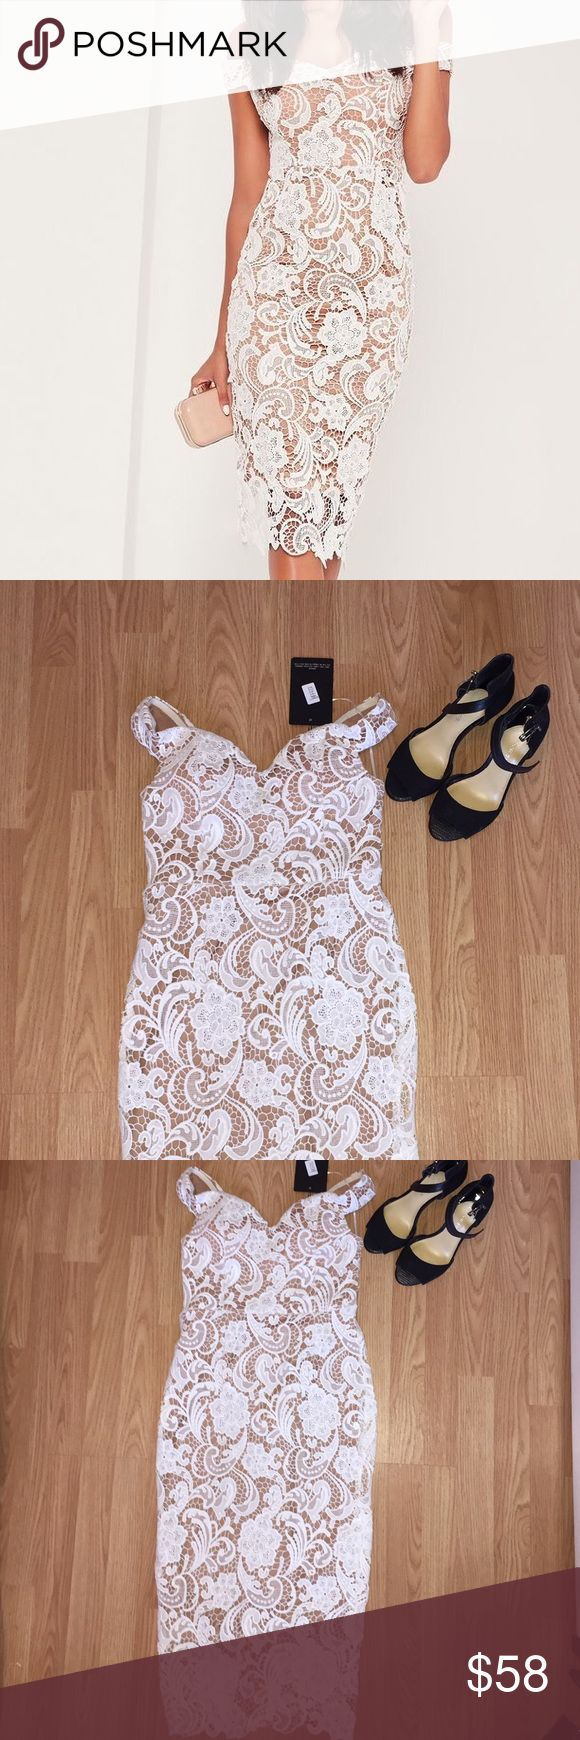 Missguided white dress Gorgeous dress. Perfect for graduation. Size  S Missguided Dresses Midi